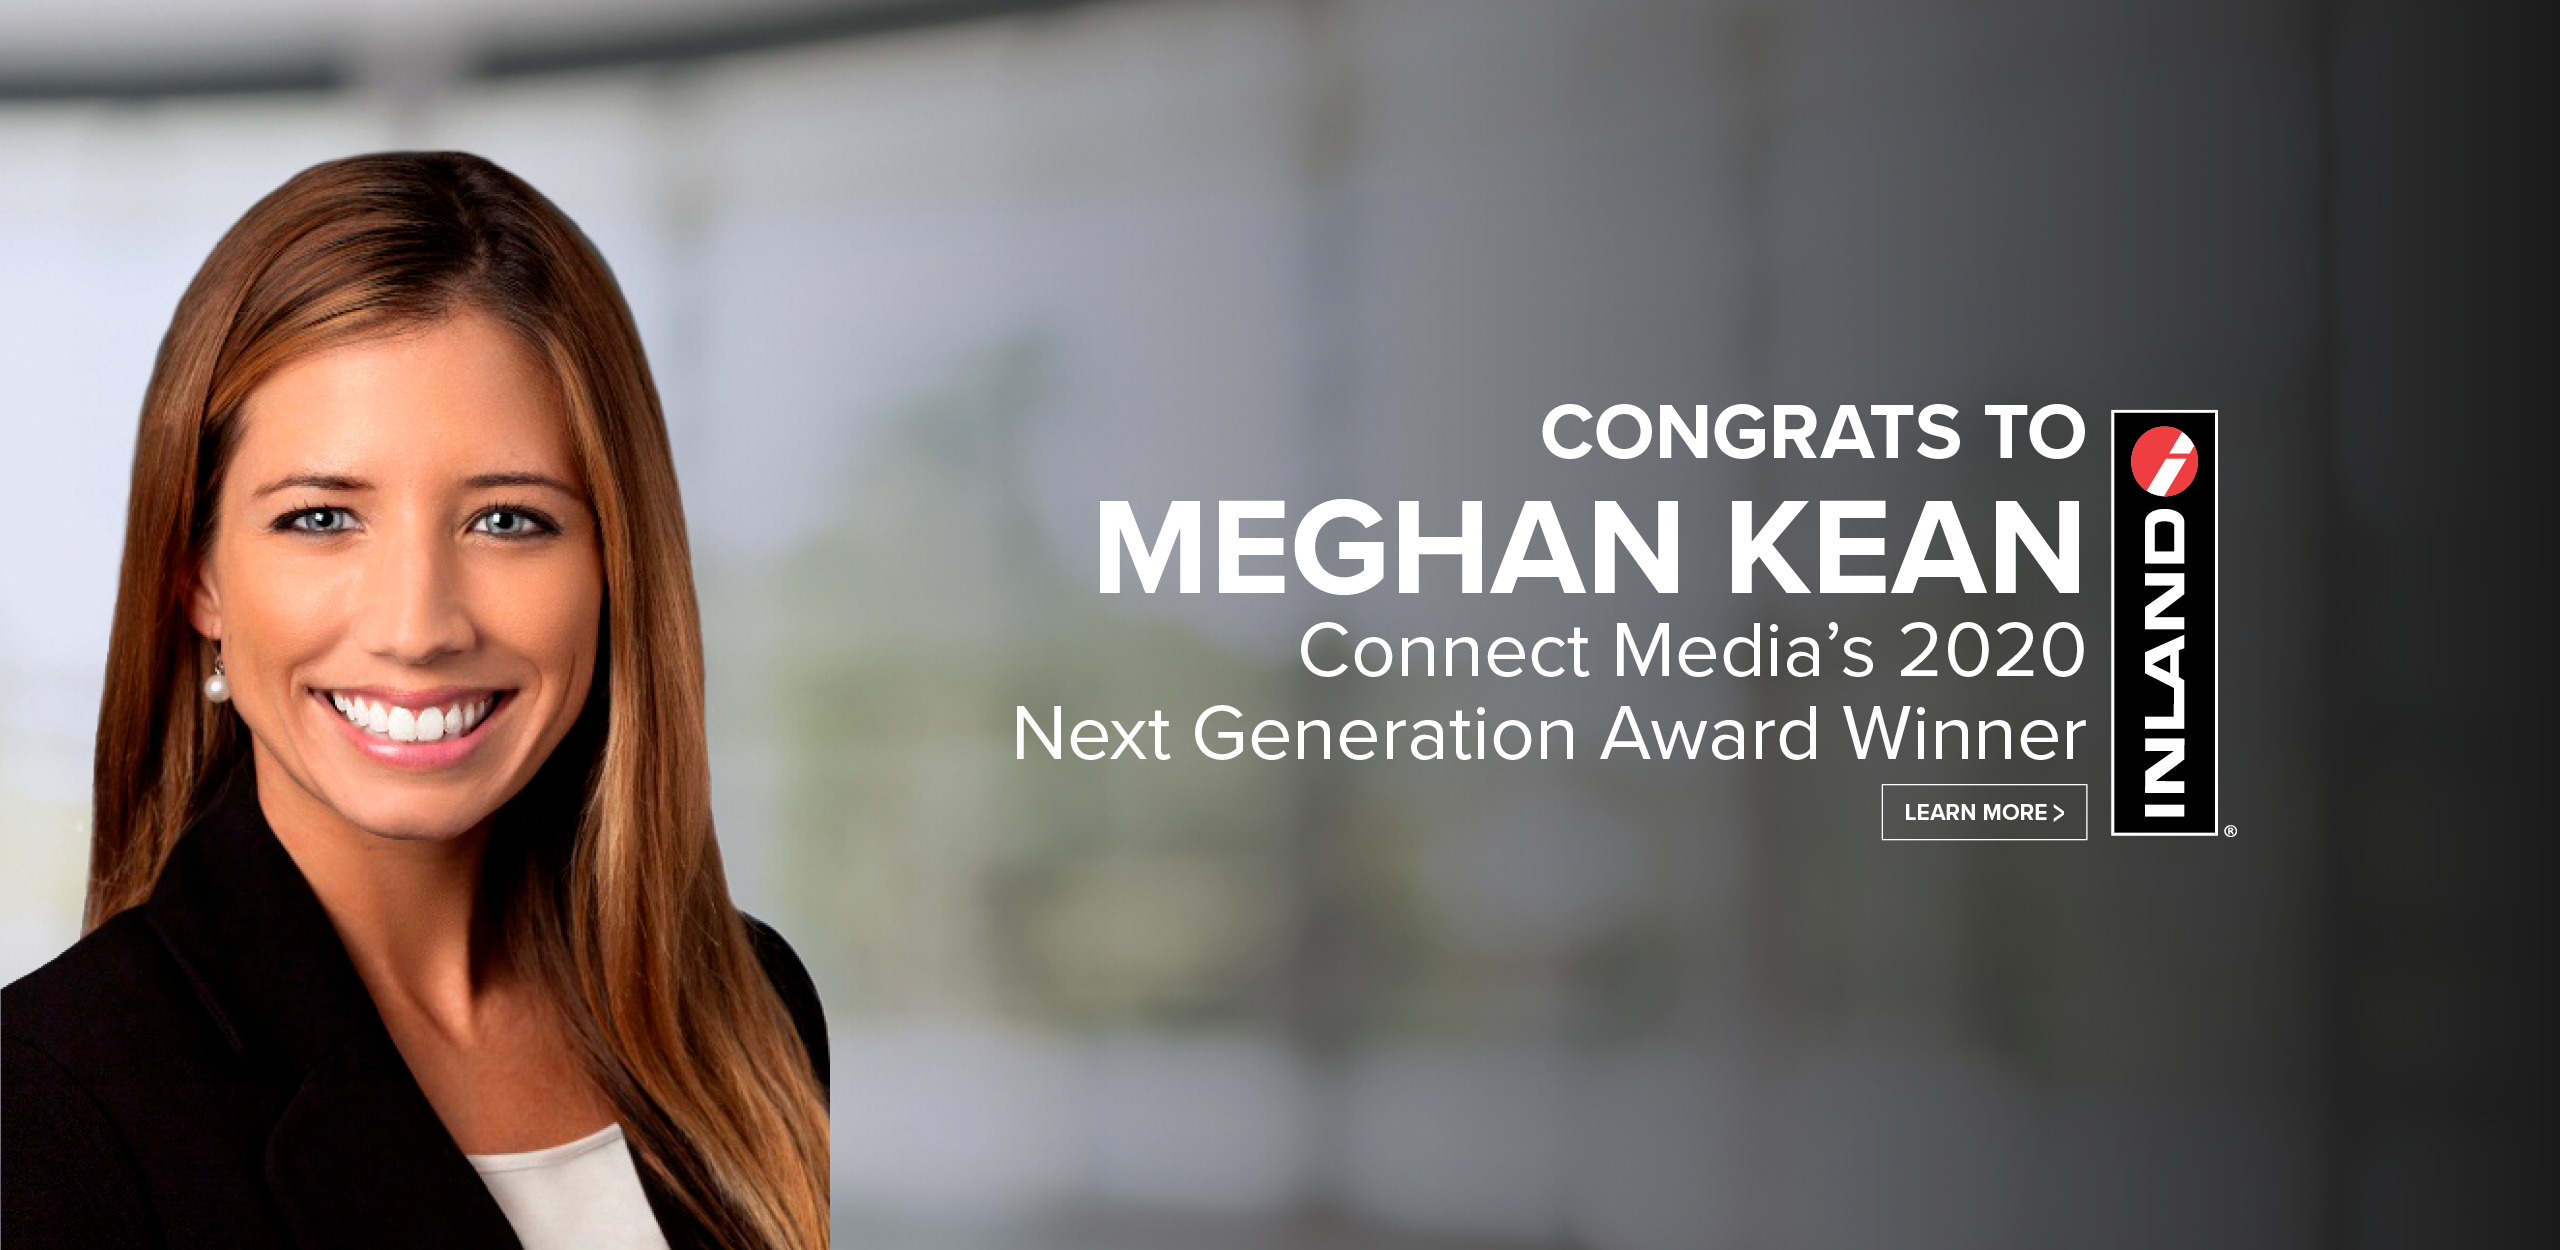 Meghan Kean Connect Media Next Gen Award